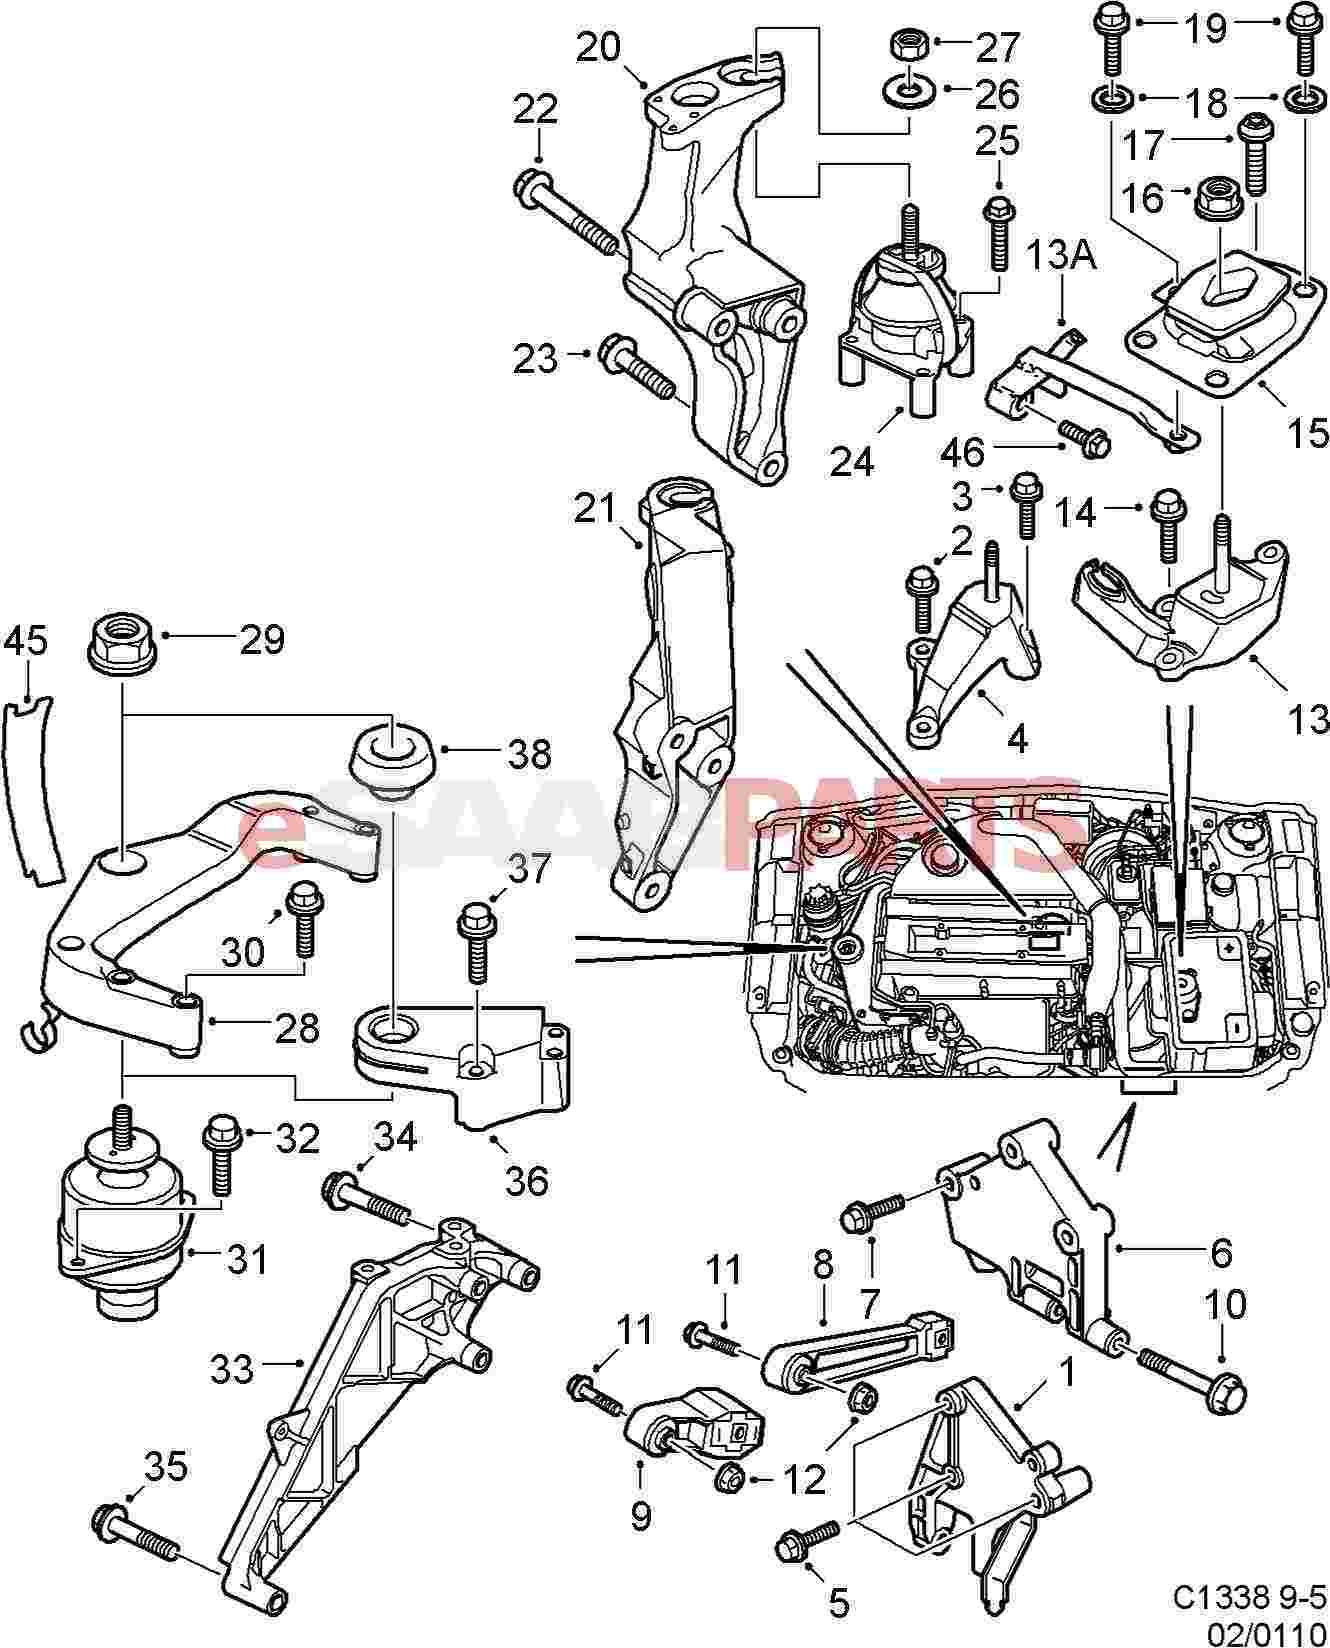 12770367 saab engine mount lower passenger rh side 99 09 9 5 rh esaabparts com 2003 Saab 9 3 Timing Diagram Saab 900 Engine Diagram